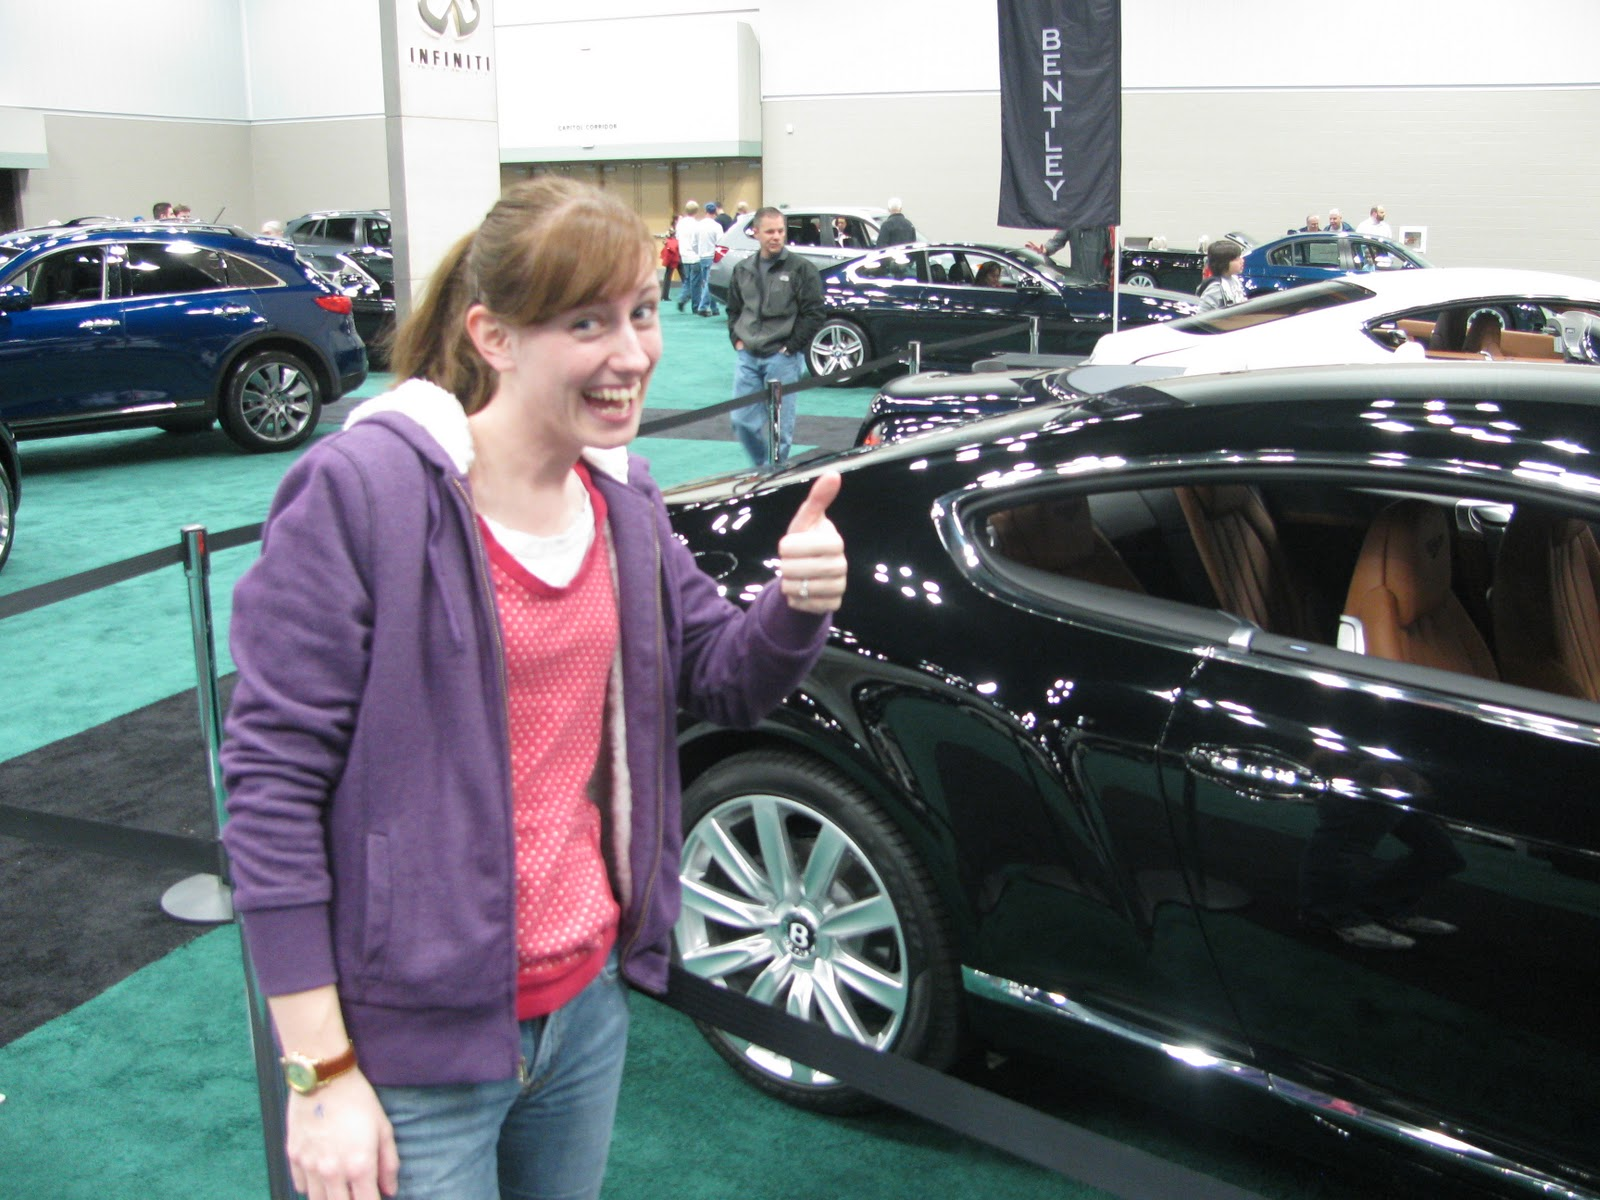 Indianapolis Car Show And Car Shopping - Car show in indianapolis this weekend